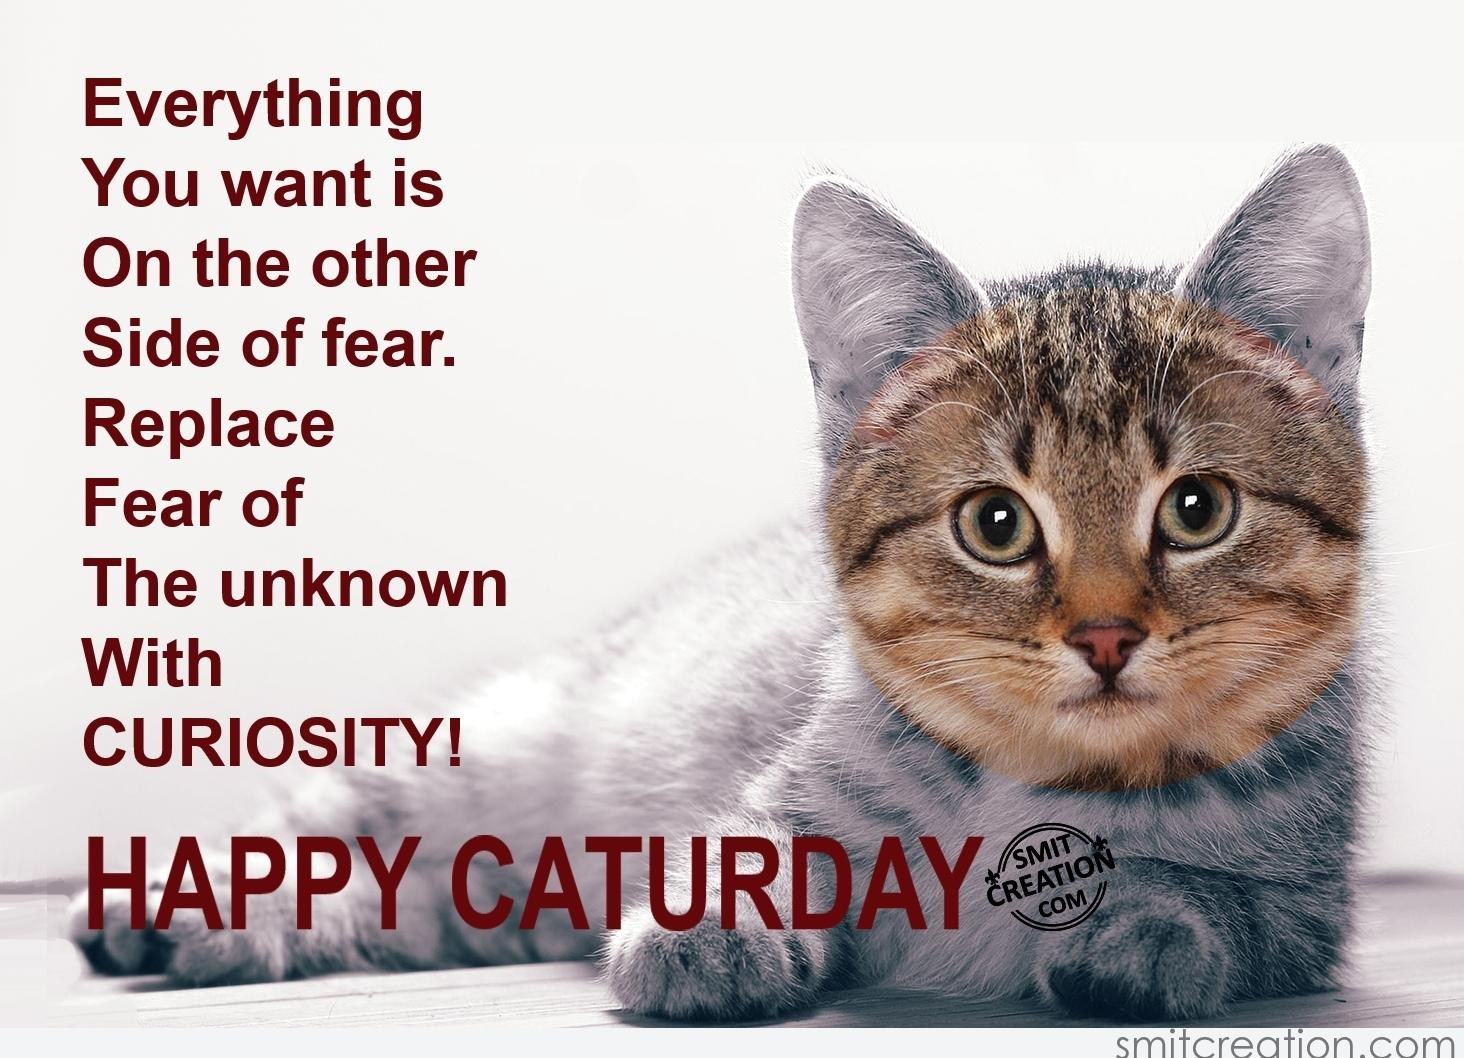 Image result for Happy Caturday with winter images